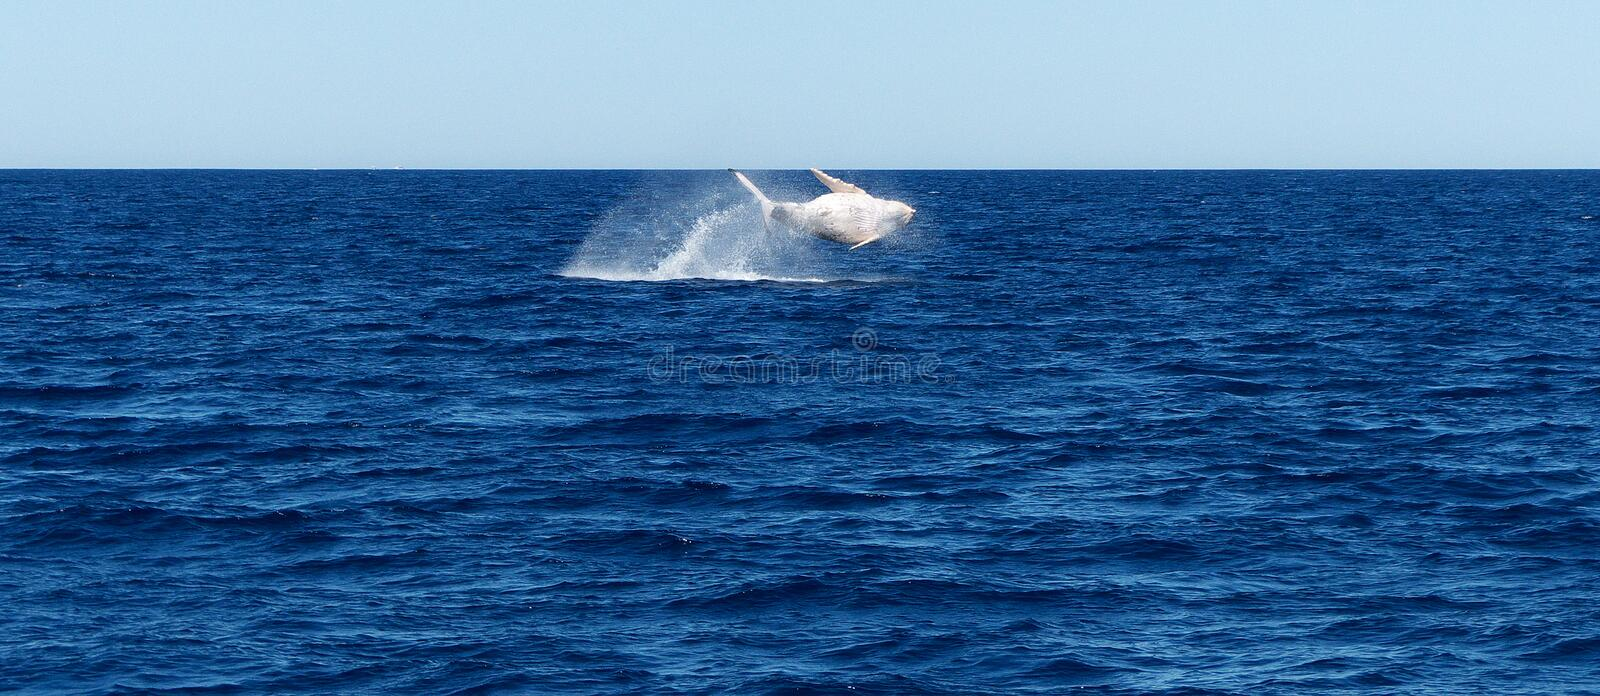 Breaching Whale stock image